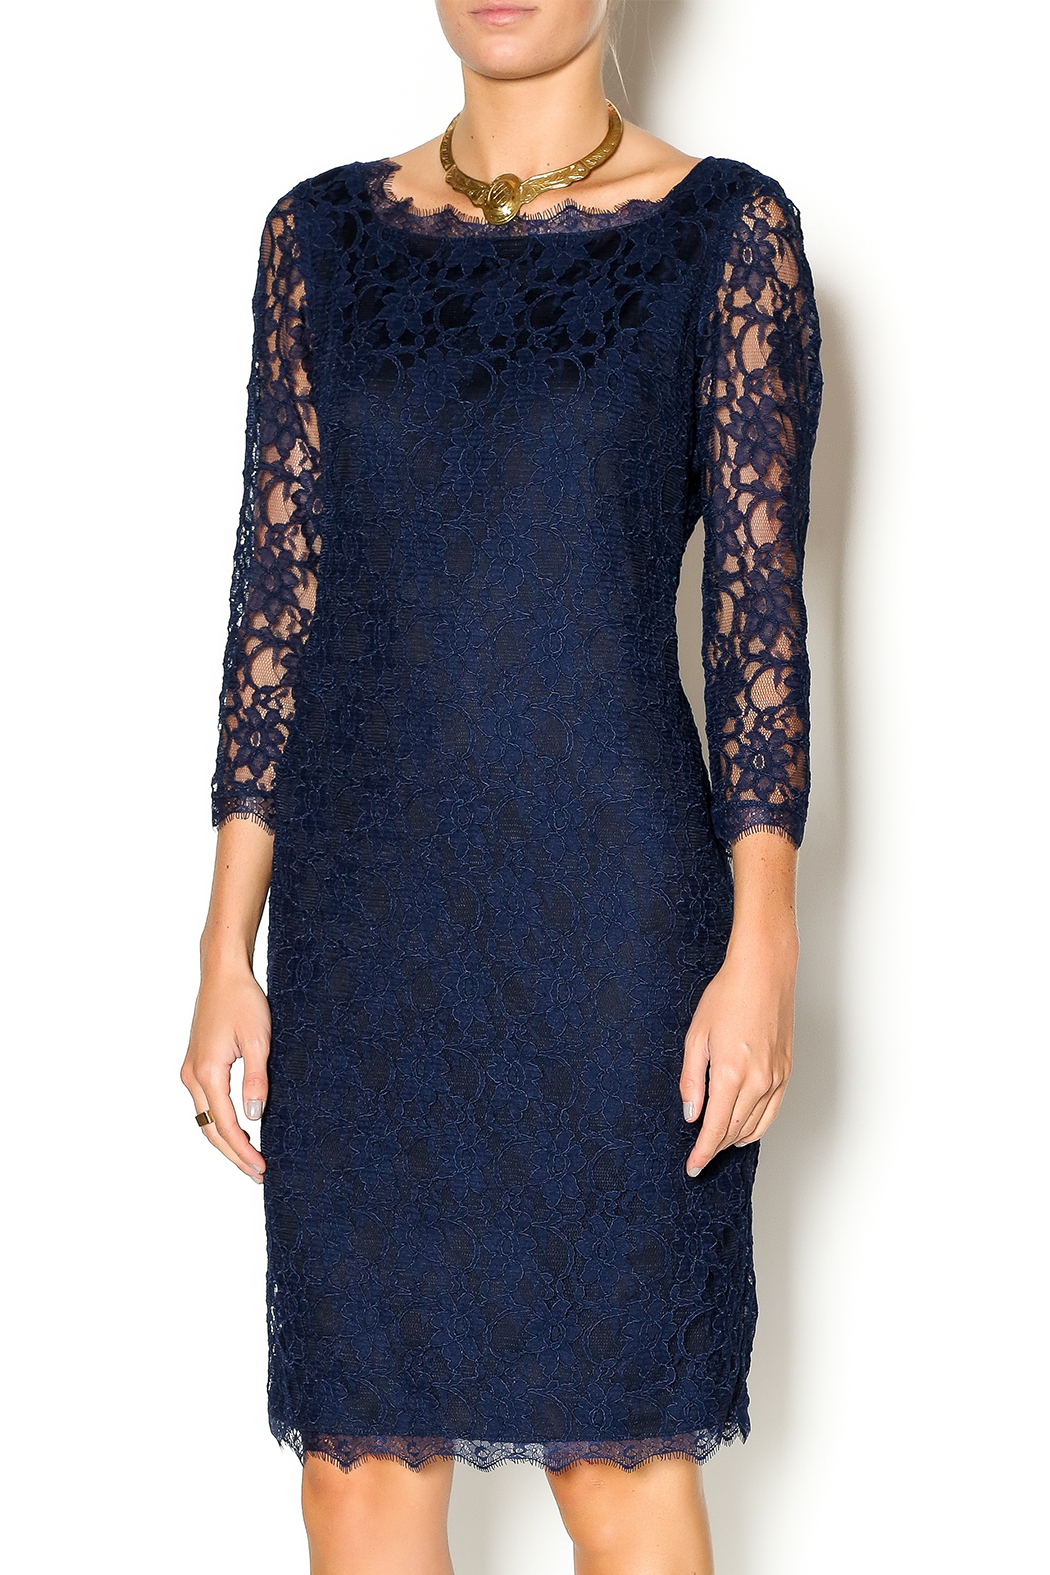 Joseph Ribkoff Lovely Lace Dress from Florida by J. Ashley — Shoptiques